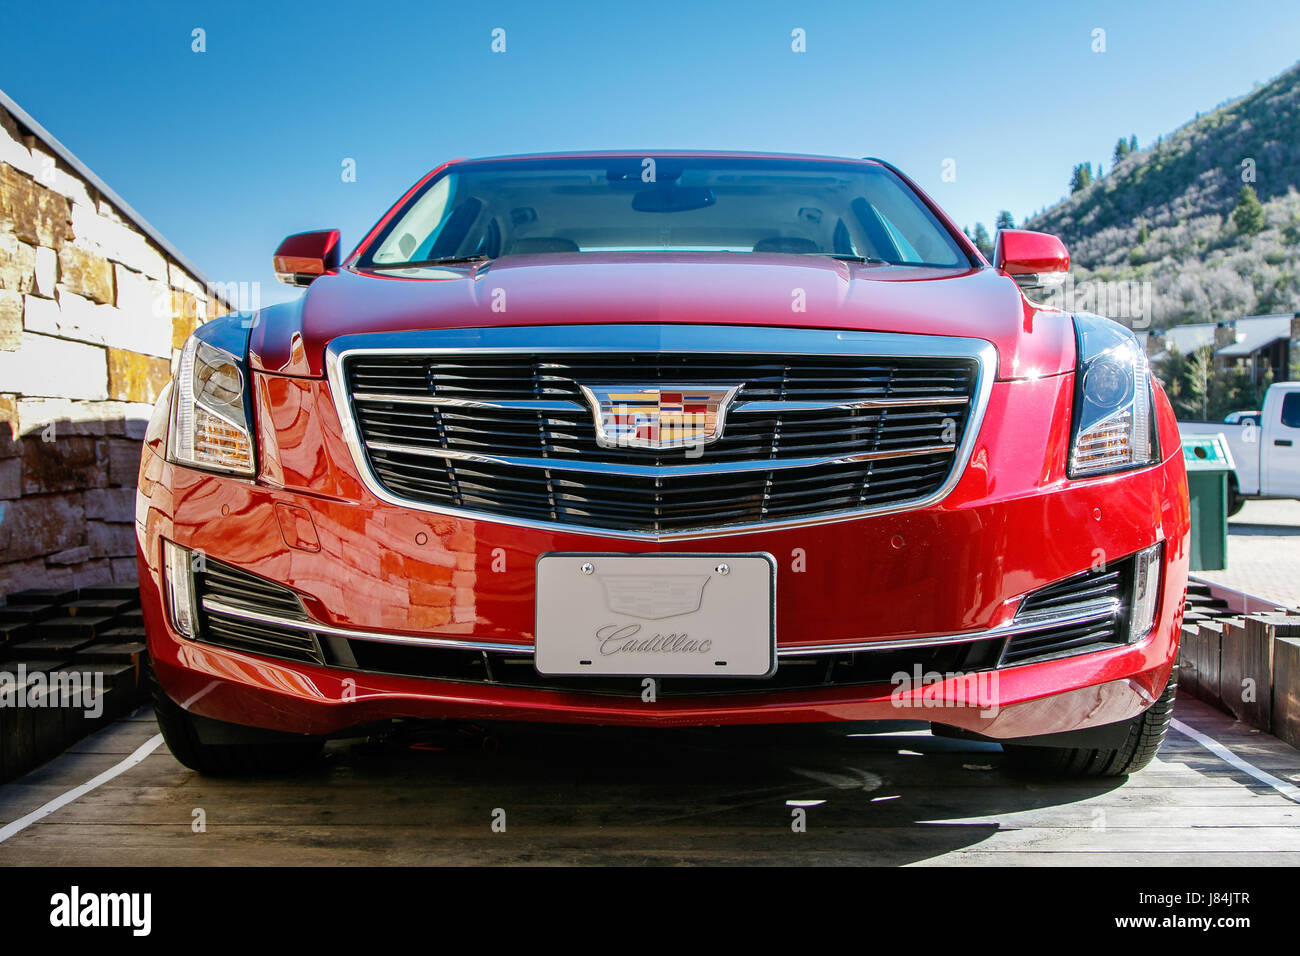 Park City Ut May 12 2017 Brand New Cadillac Is Displayed At The